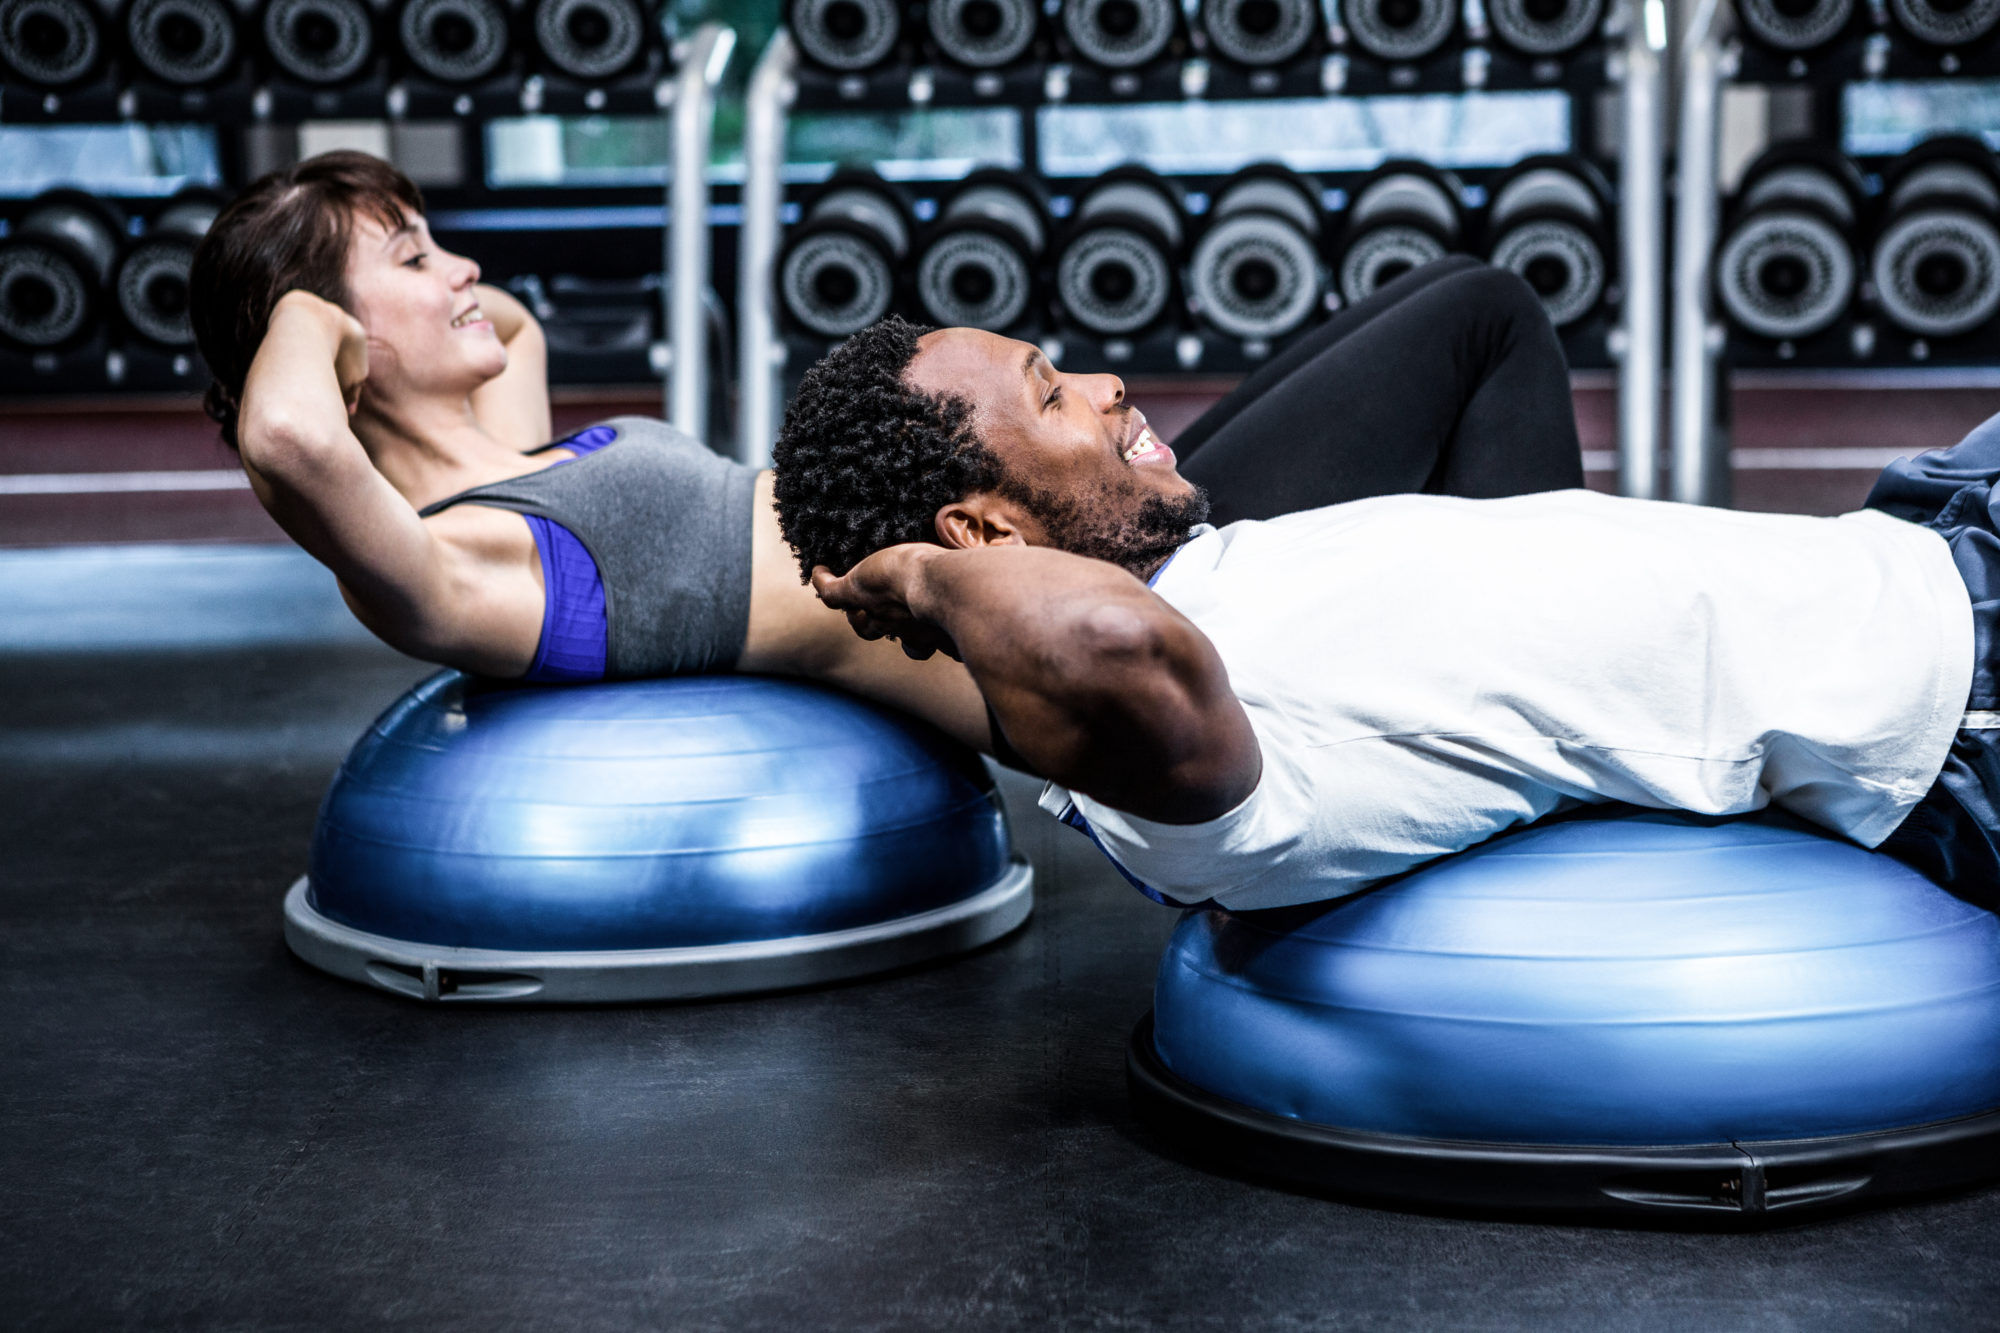 Two people exercising in apartment fitness center